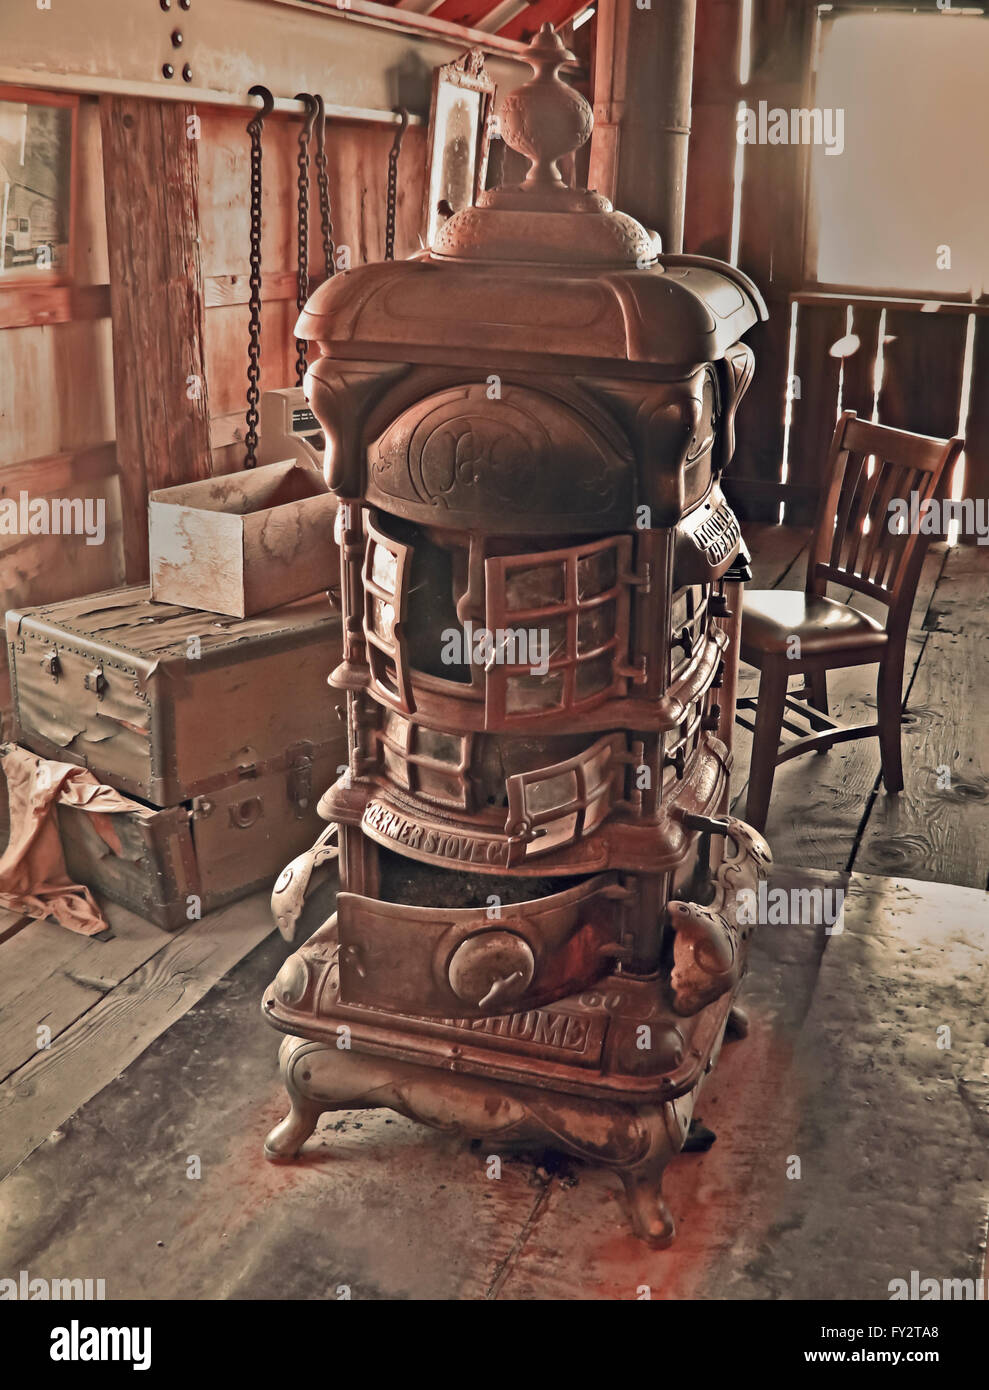 Vintage stove in abandoned barn in sepia colors  on wooden floor. - Stock Image